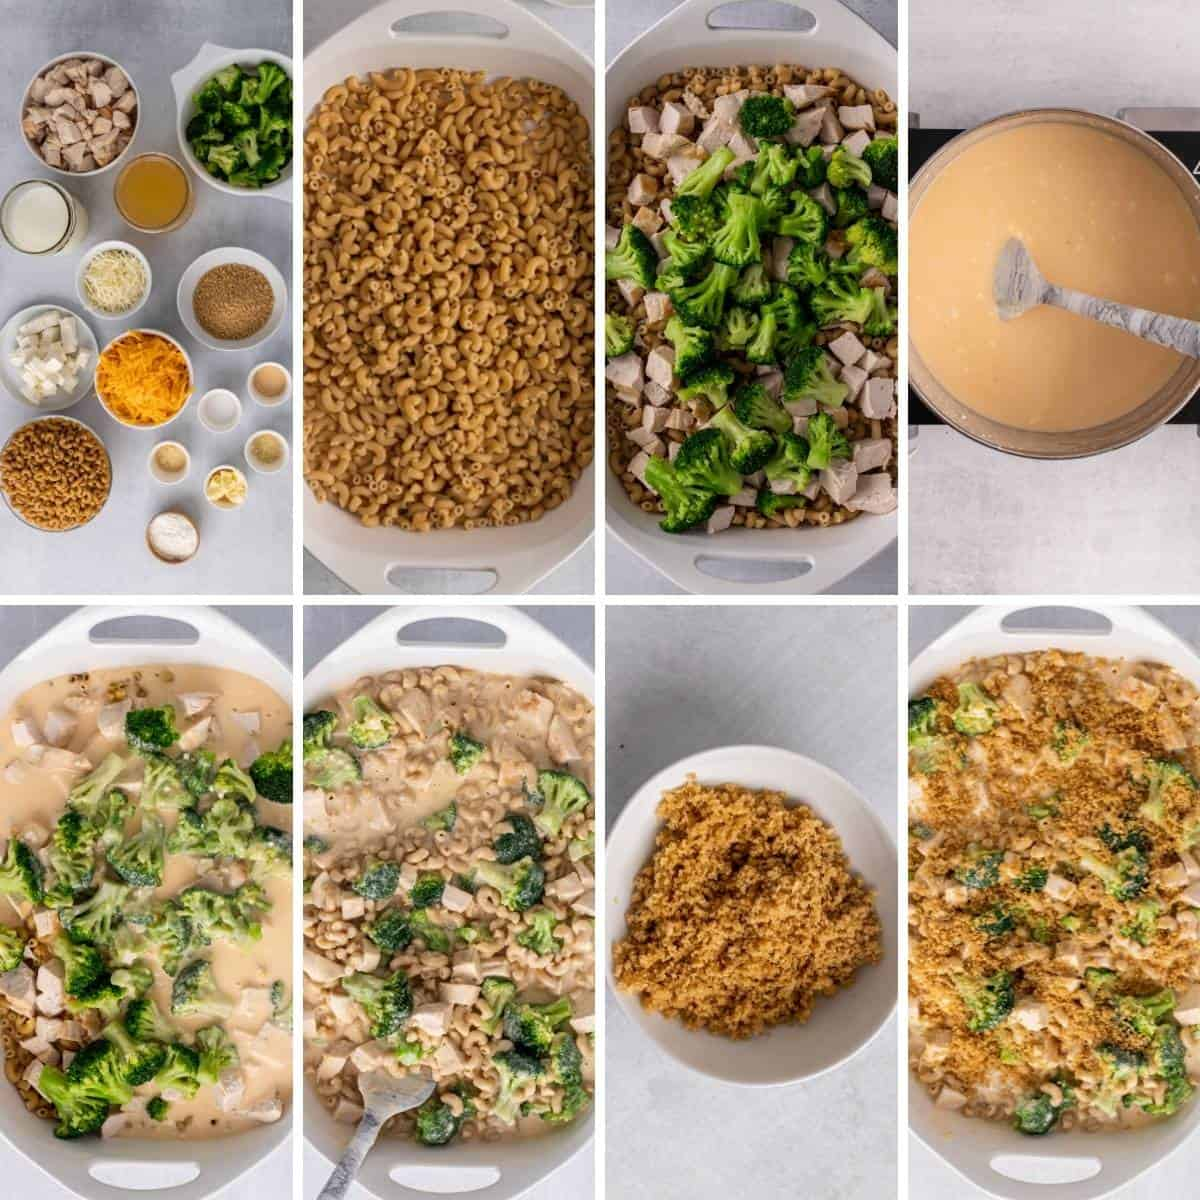 step by step collage showing how to assemble and bake a chicken broccoli casserole made with pasta